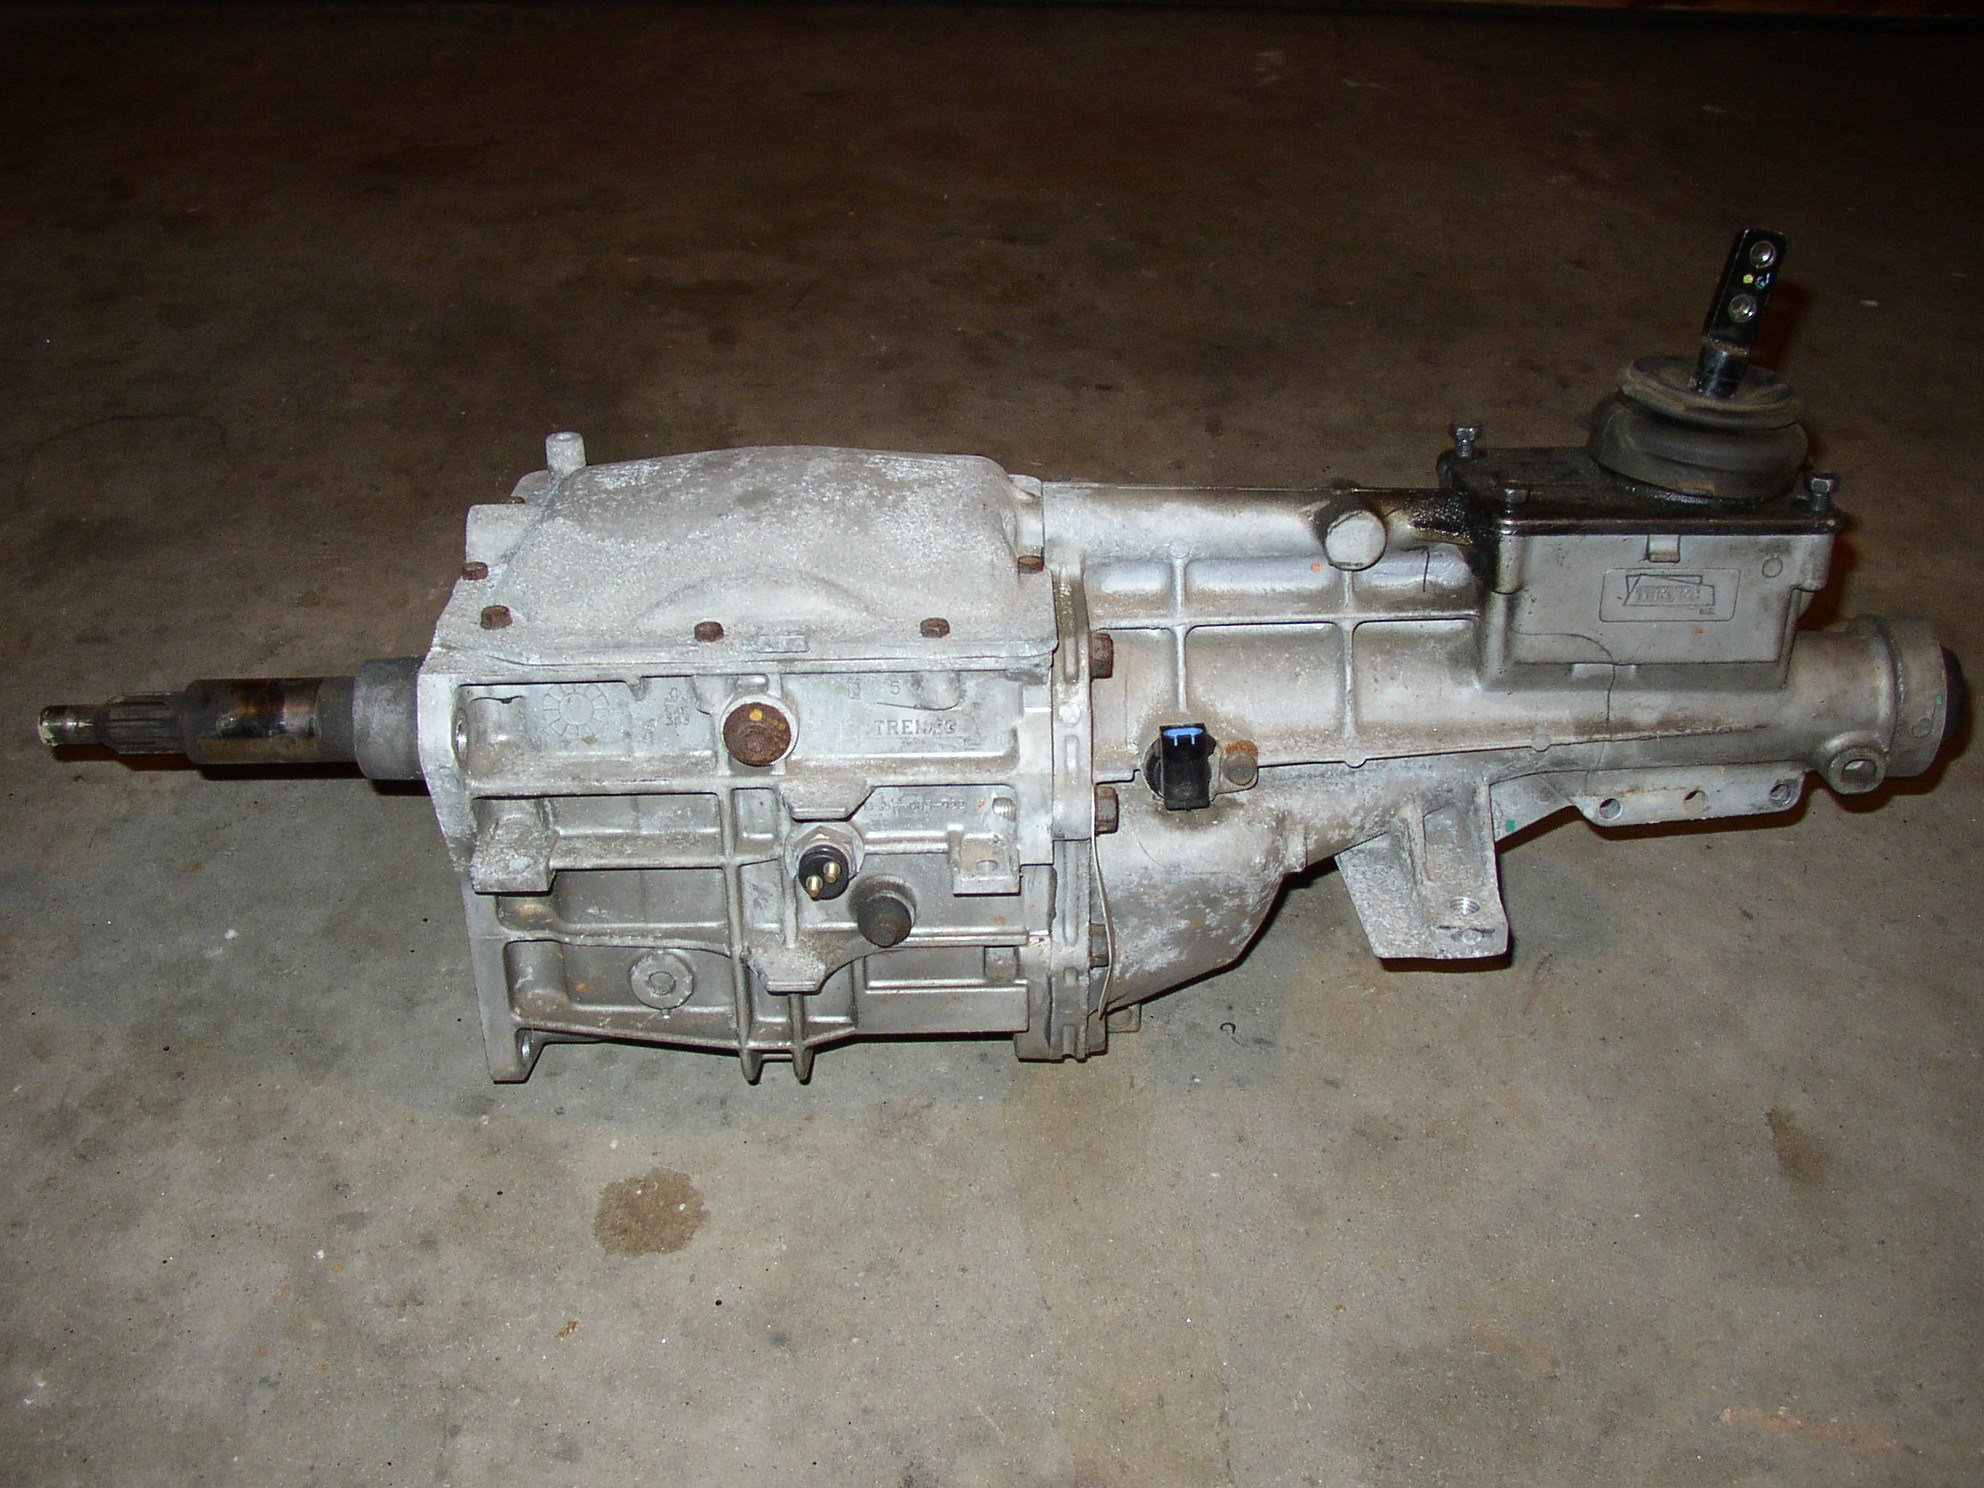 88710d1264294947 2000 mustang 3 8l automatic manual transmission swap p1040813 2000 mustang 3 8l, automatic to manual transmission swap ford  at webbmarketing.co